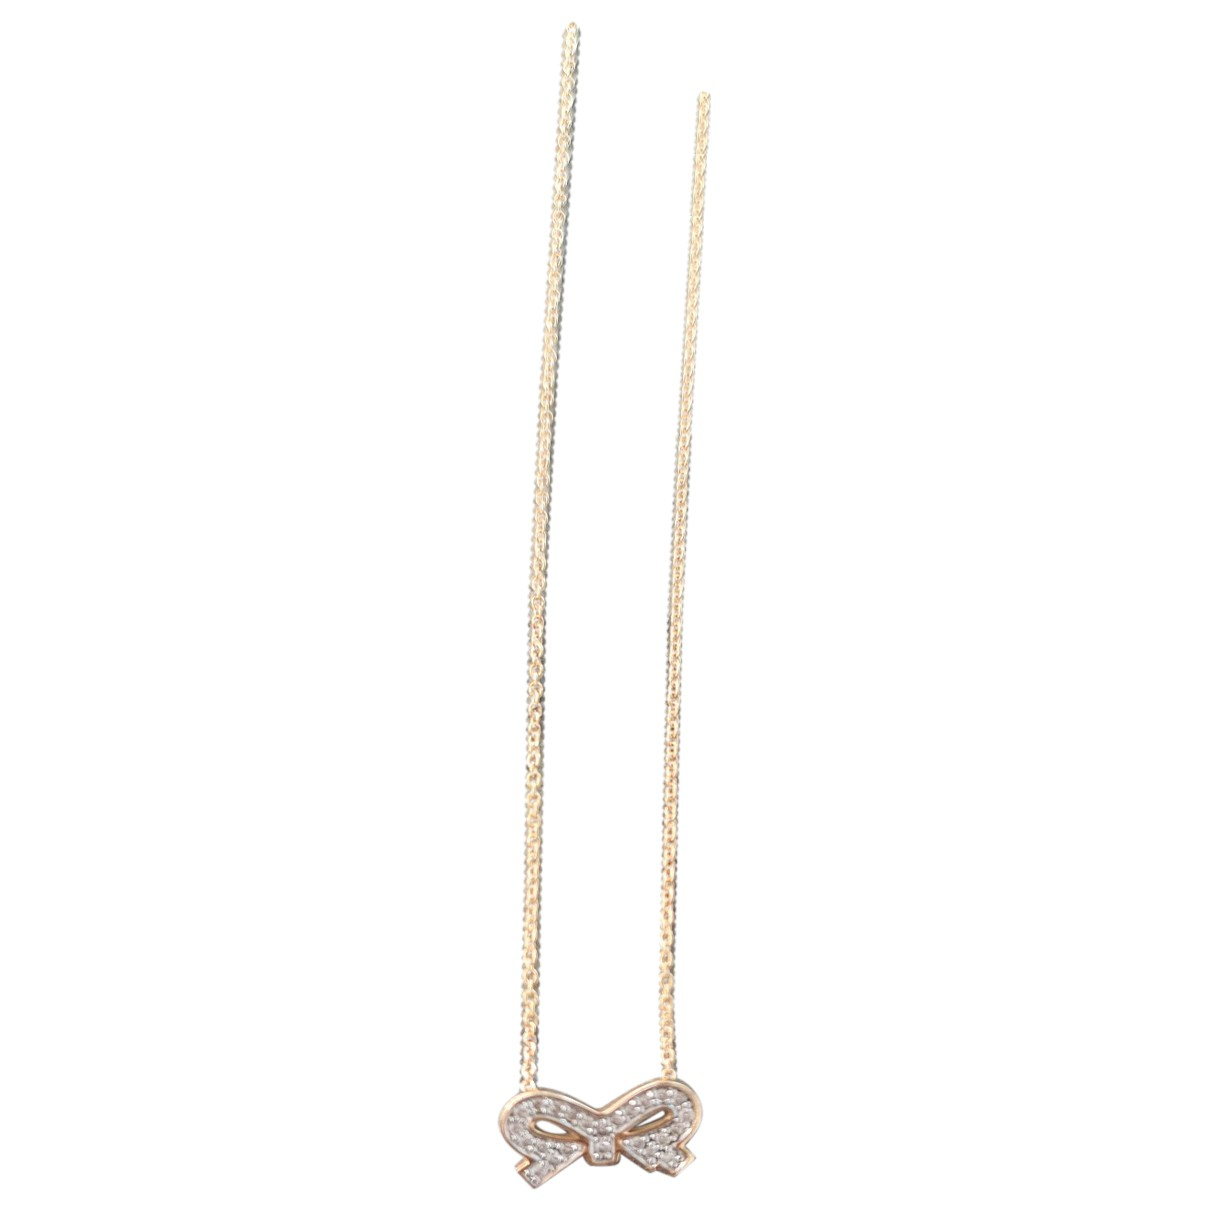 Ginette Ny Minis Pink Pink gold necklace for Women N